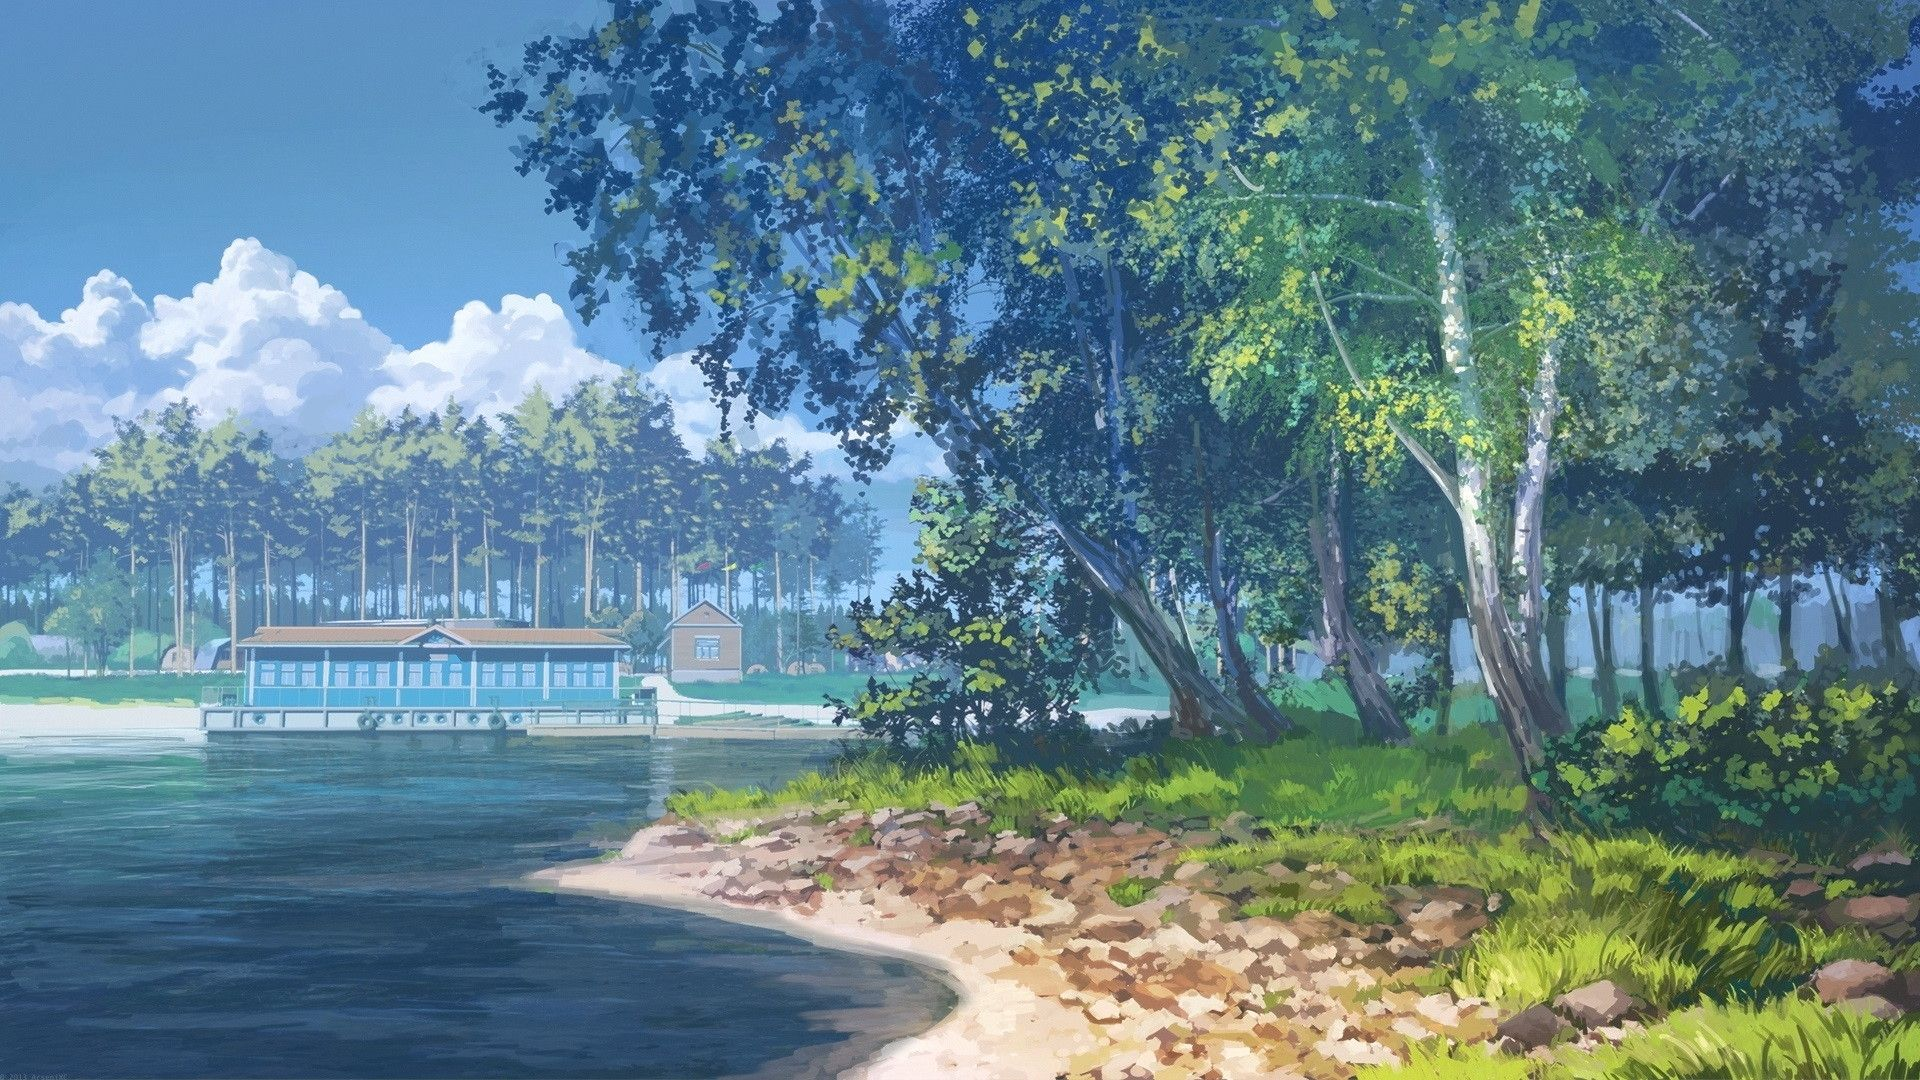 Anime Scenery Wallpaper 48 Images Anime Scenery Scenery Wallpaper Anime Scenery Wallpaper